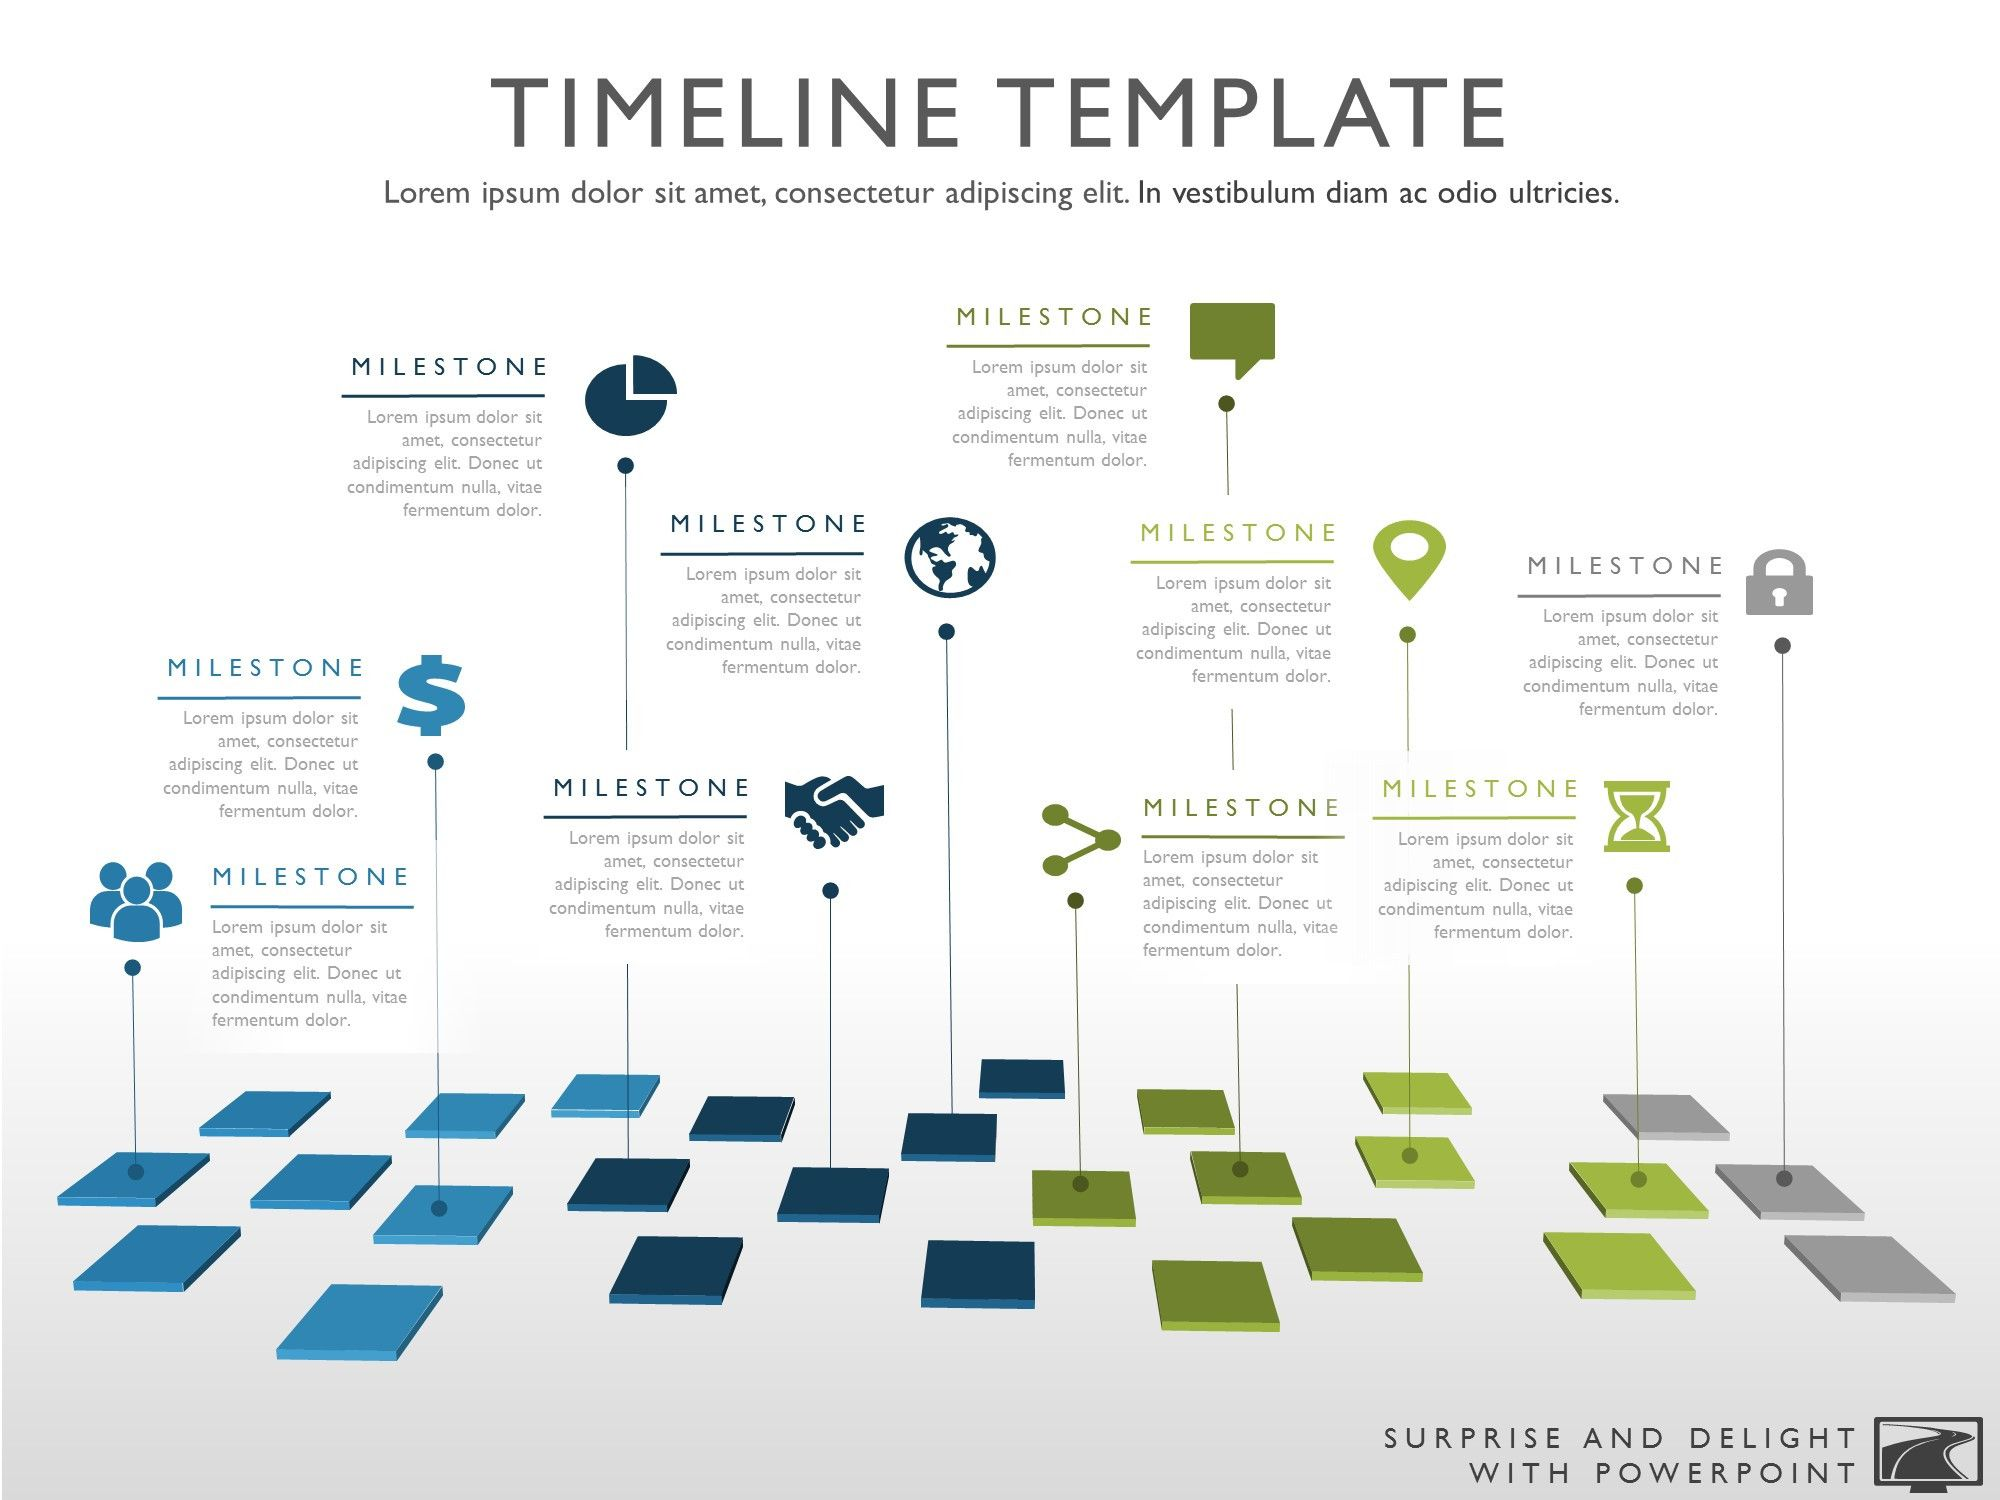 Timeline template my product roadmap work 1 for Timline template